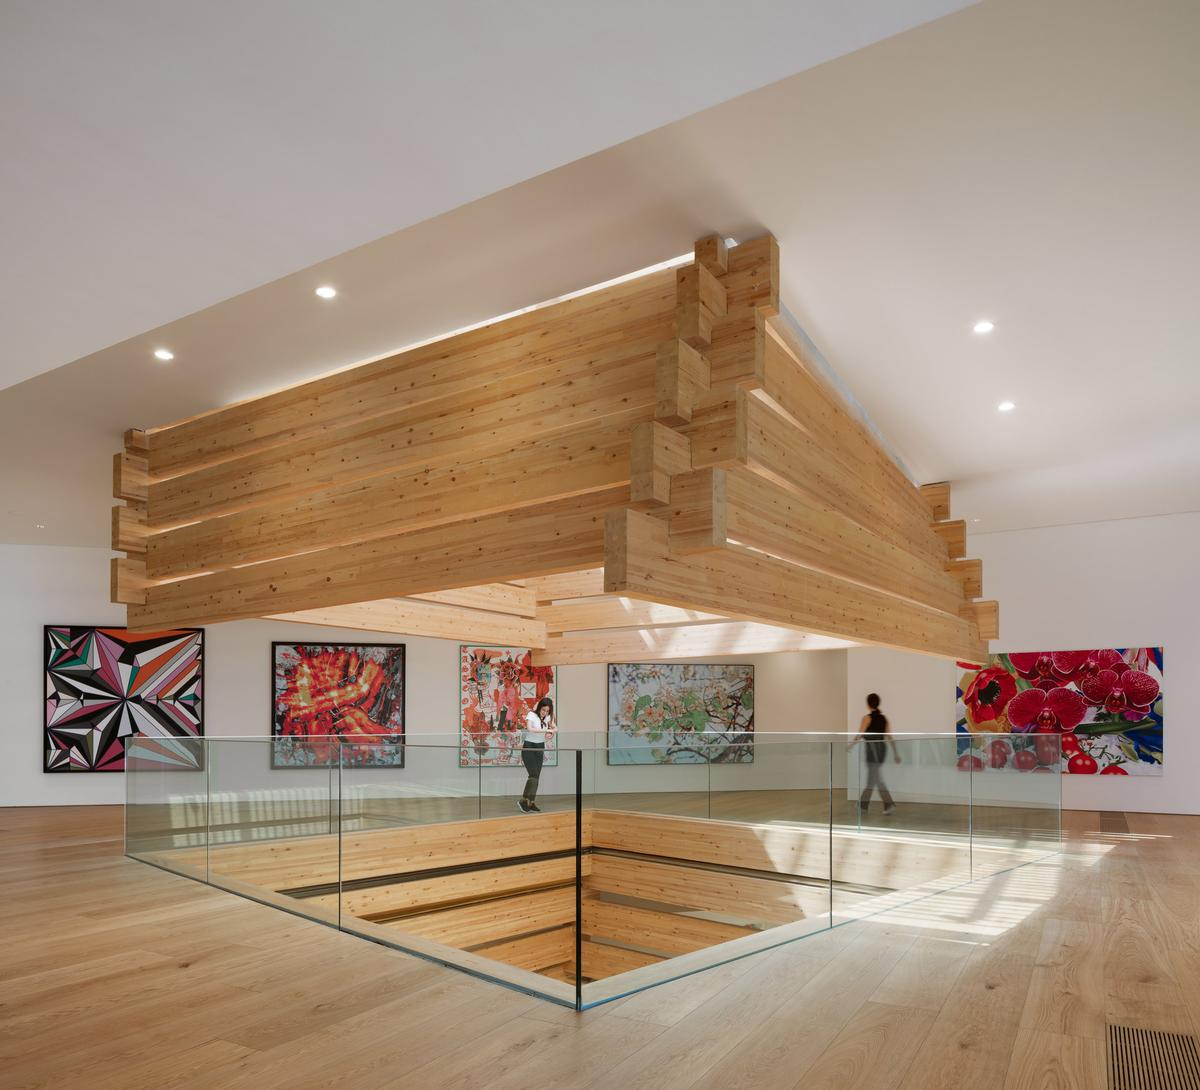 The museum has been built to house Erol Tabanca's modern art collection / NAARO